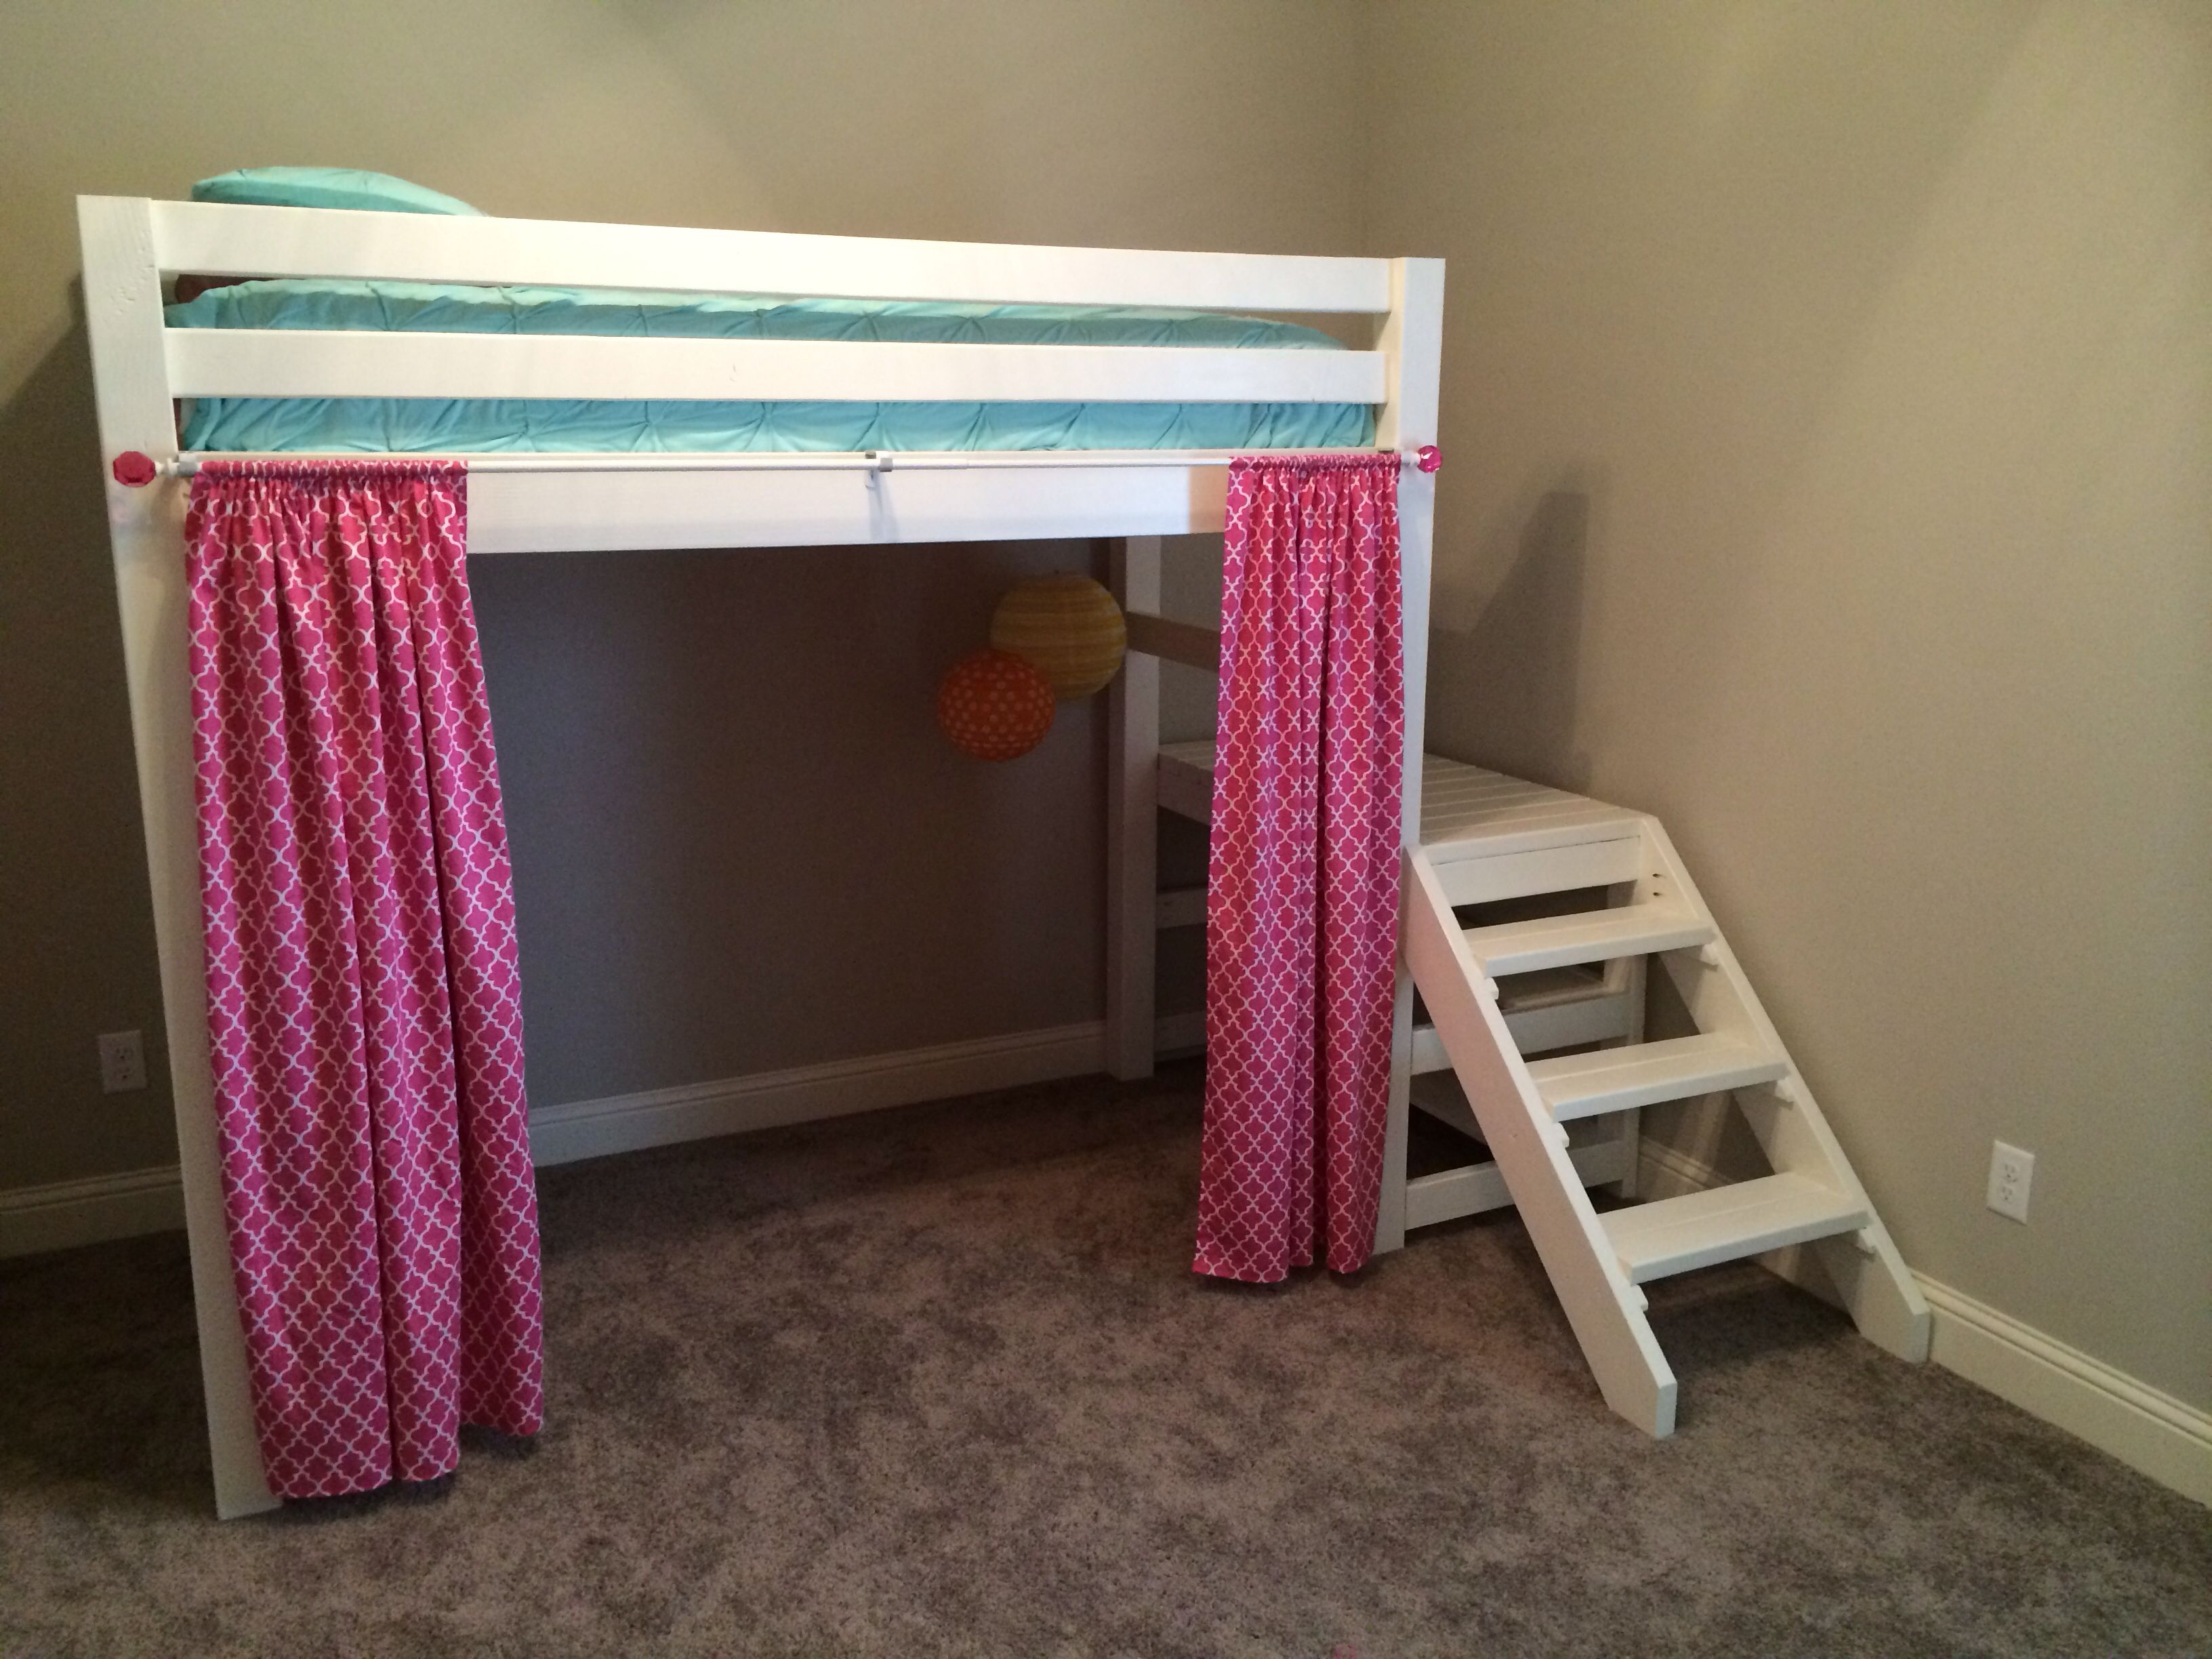 Loft bunk bed with slide  Anna White style loft bedjakes bed to buildbut stained  Boys